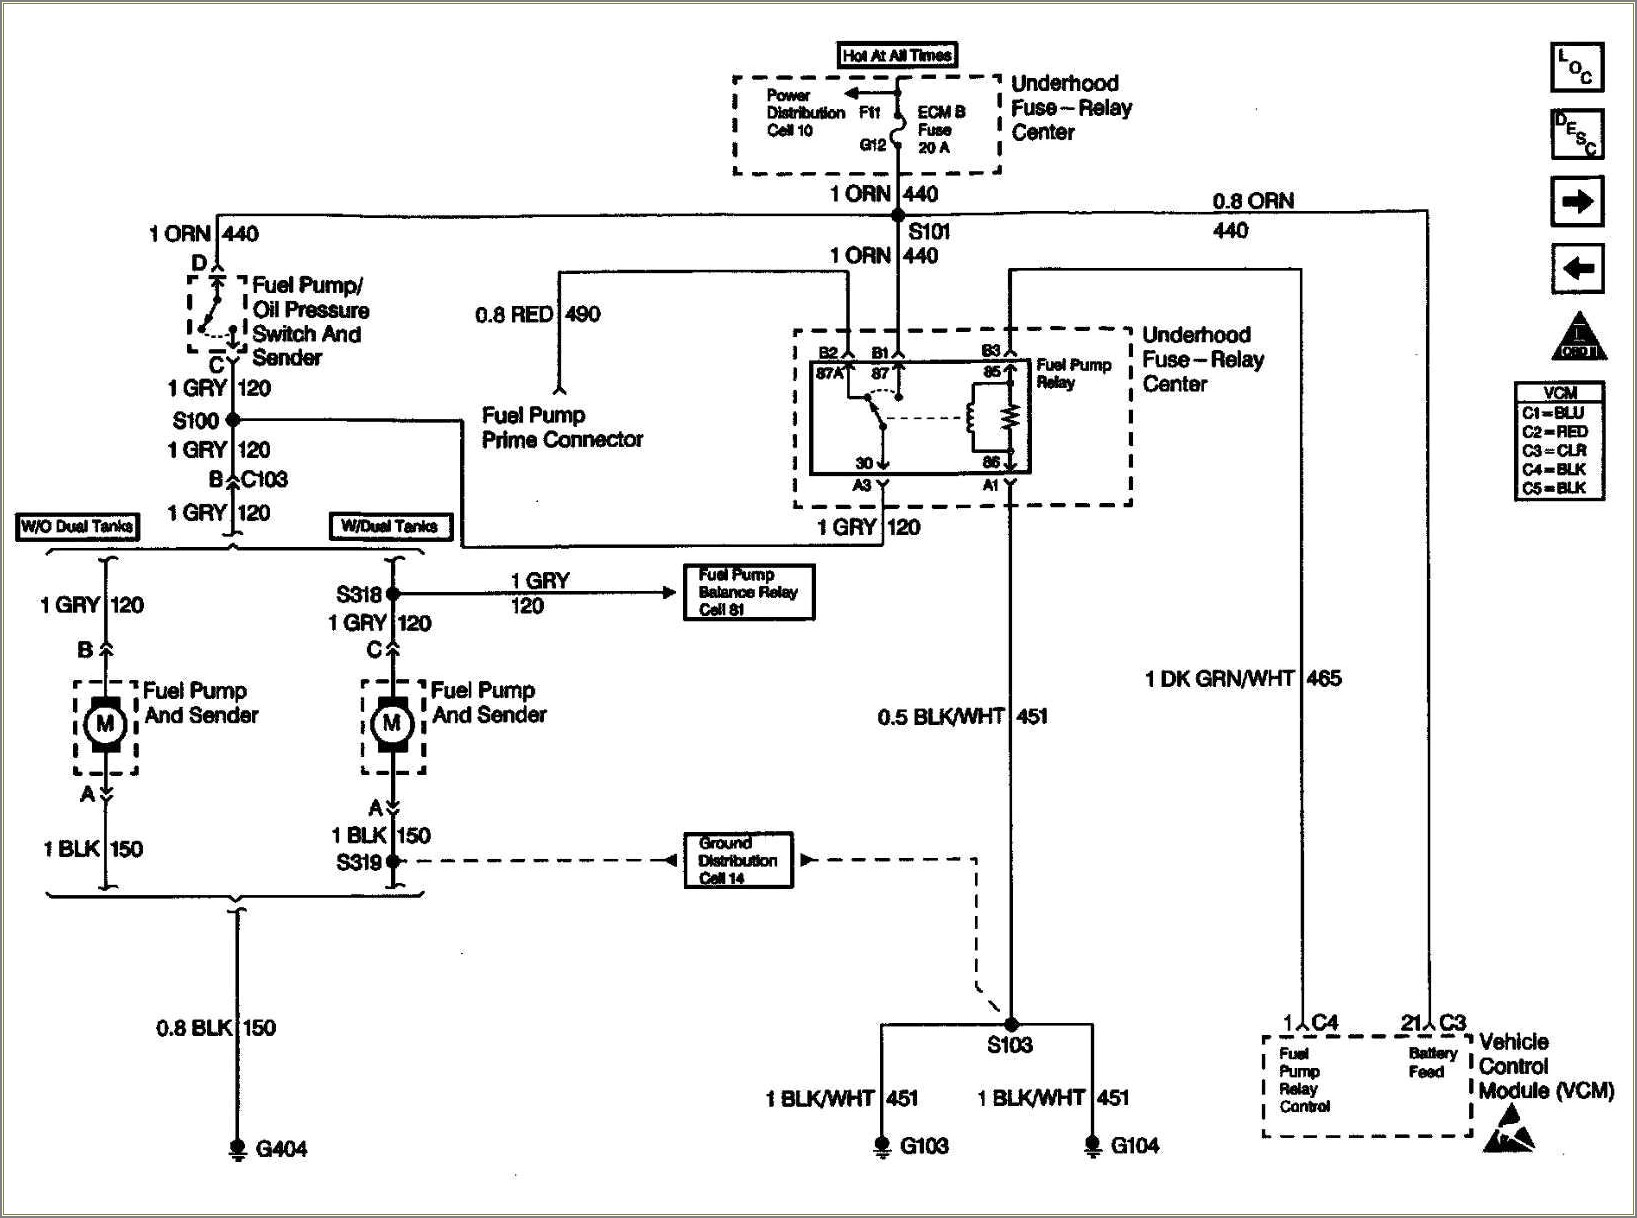 2000 Chevy Silverado Fuel Pump Wiring Diagram